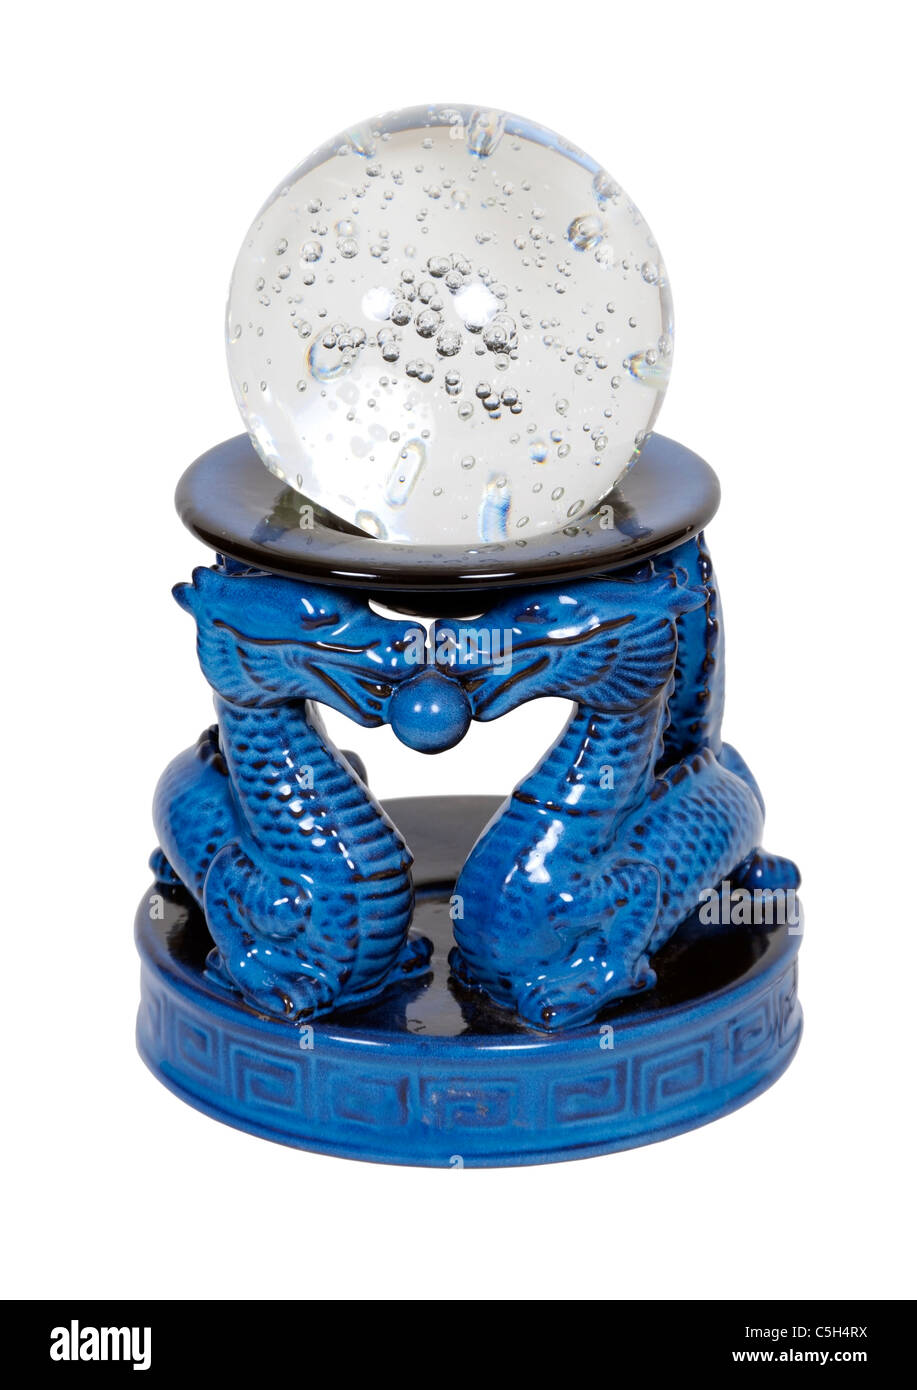 Crystal Ball on an asian dragon pedestal to hold up items of importance - path included - Stock Image